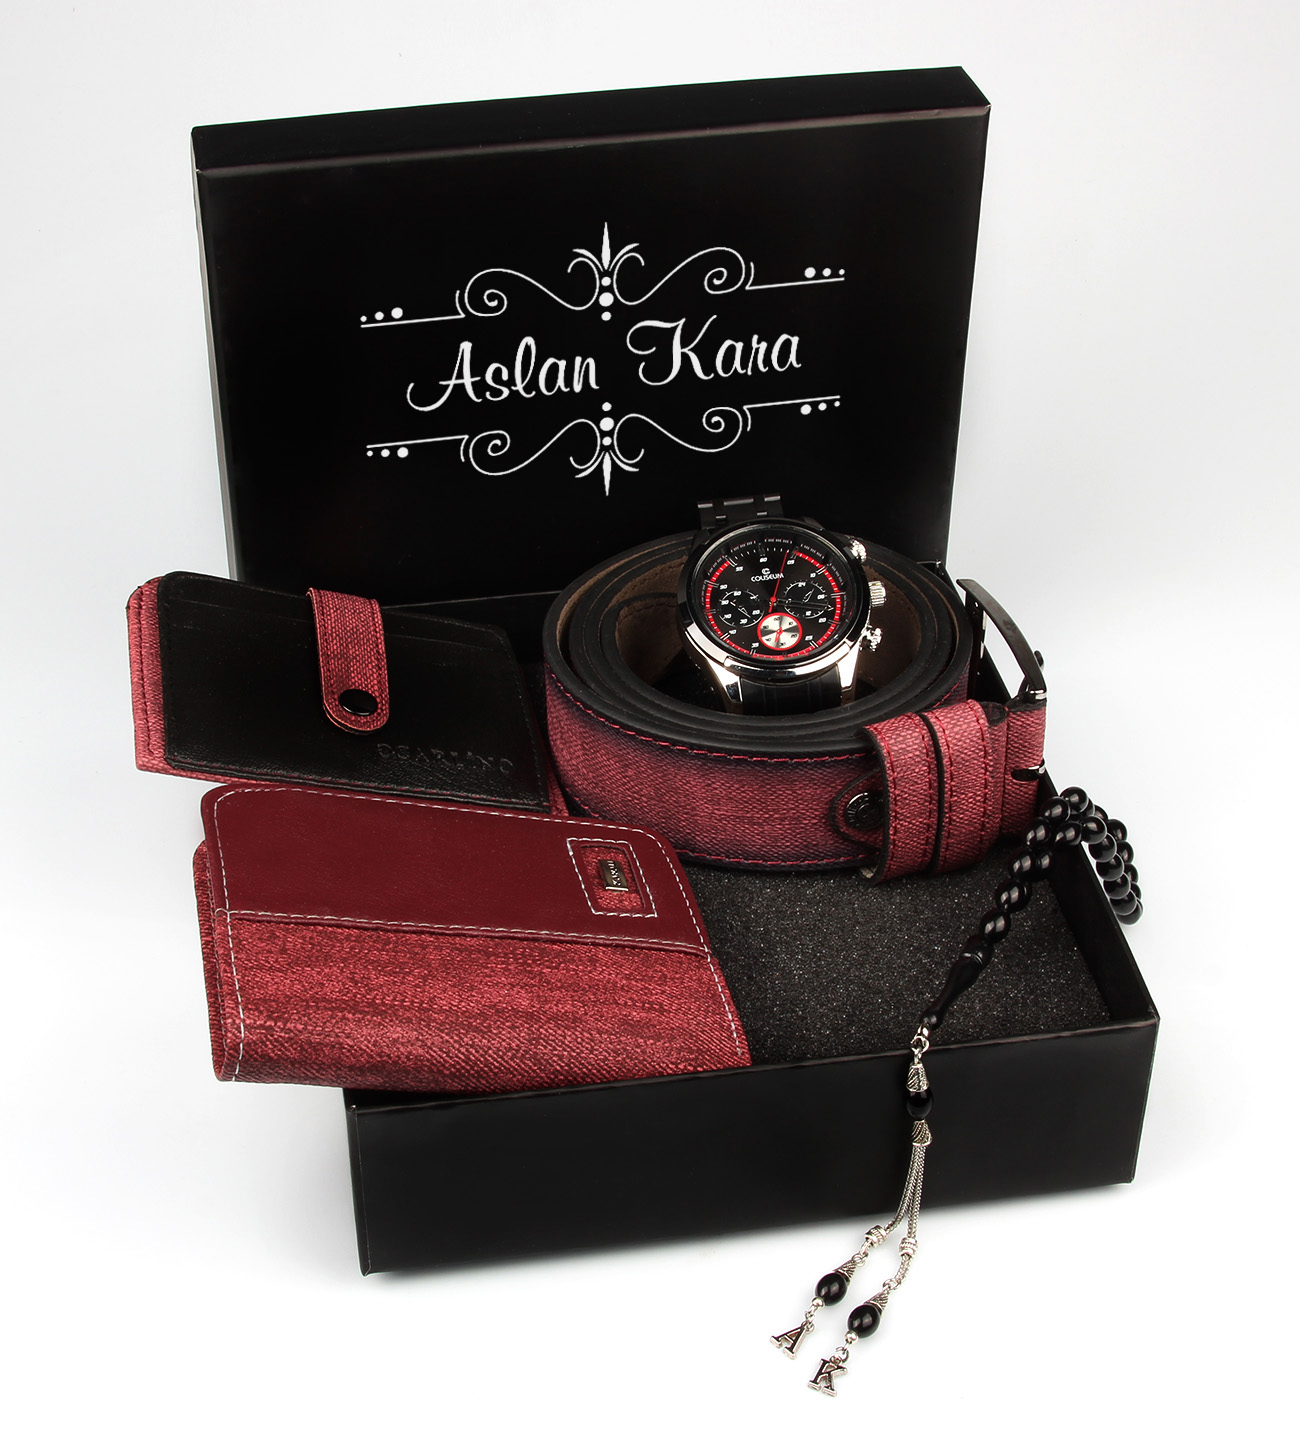 Men's Personalized Watch, Wallet, Card Holder, Belt & Prayer Beads Gift Set